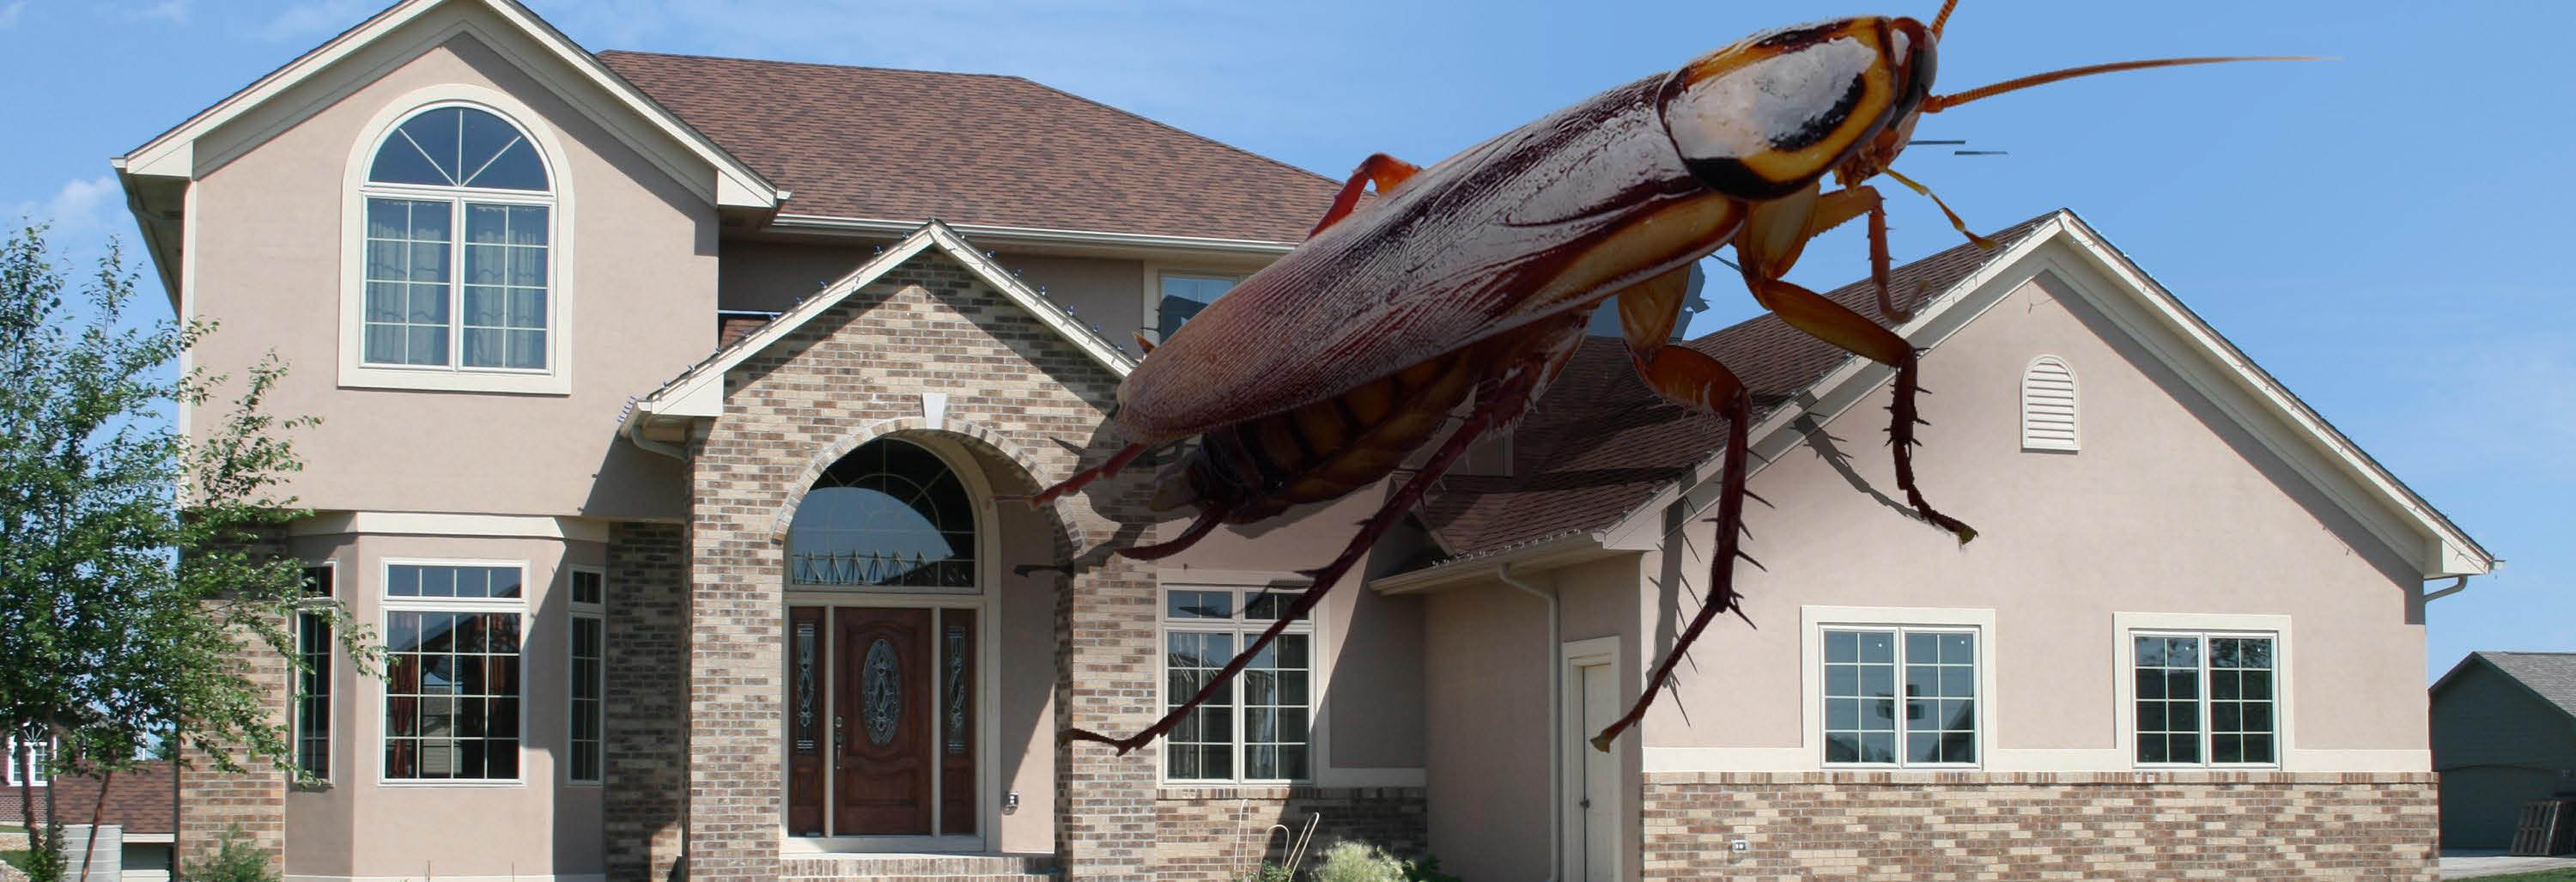 exterminetics of southern california pest control southern california